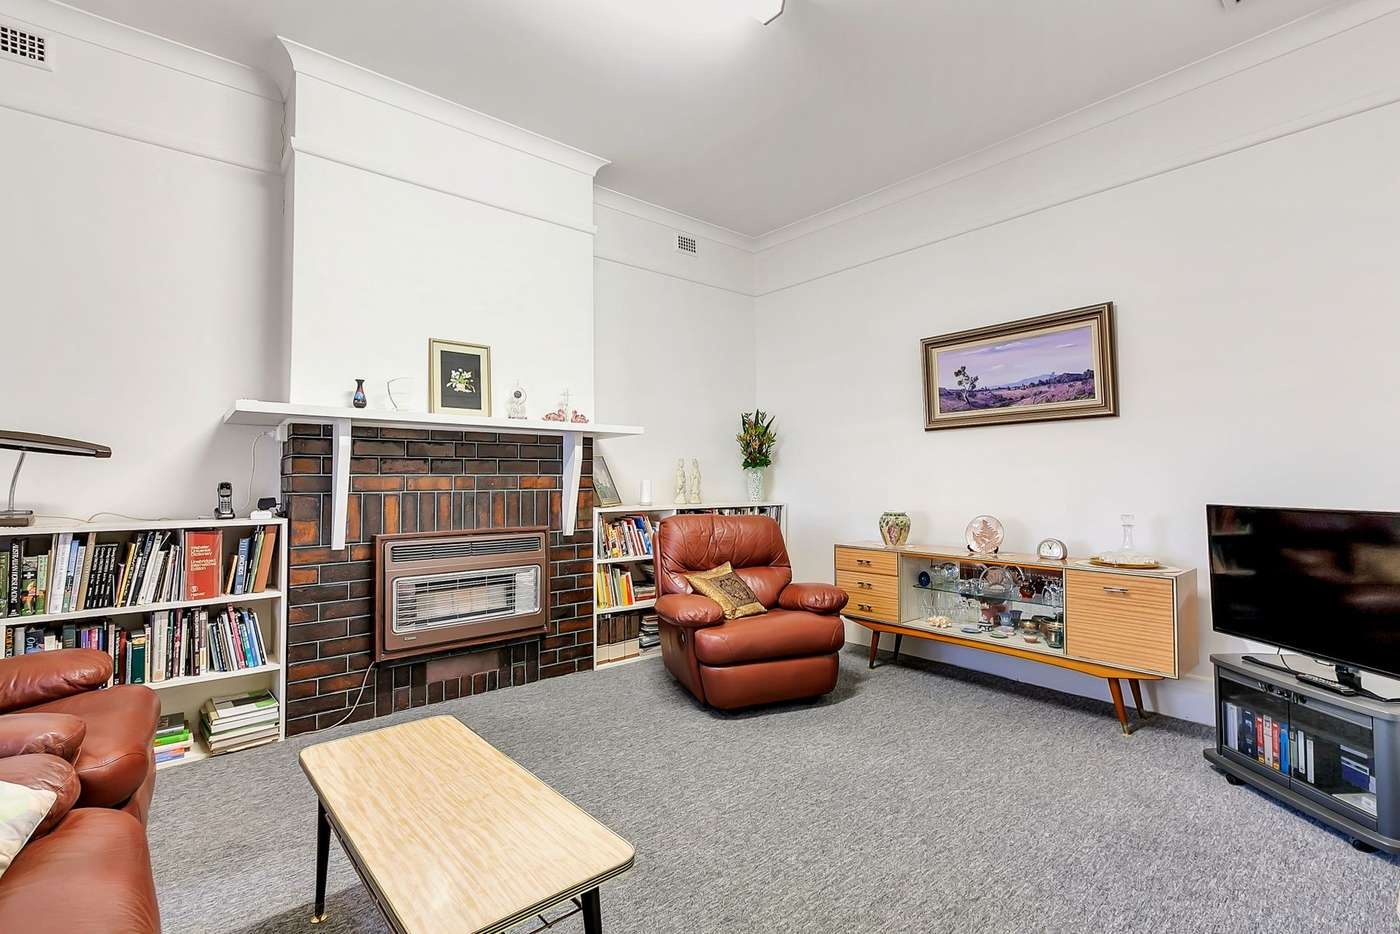 Fifth view of Homely house listing, 41 Barwell Avenue, Marleston SA 5033